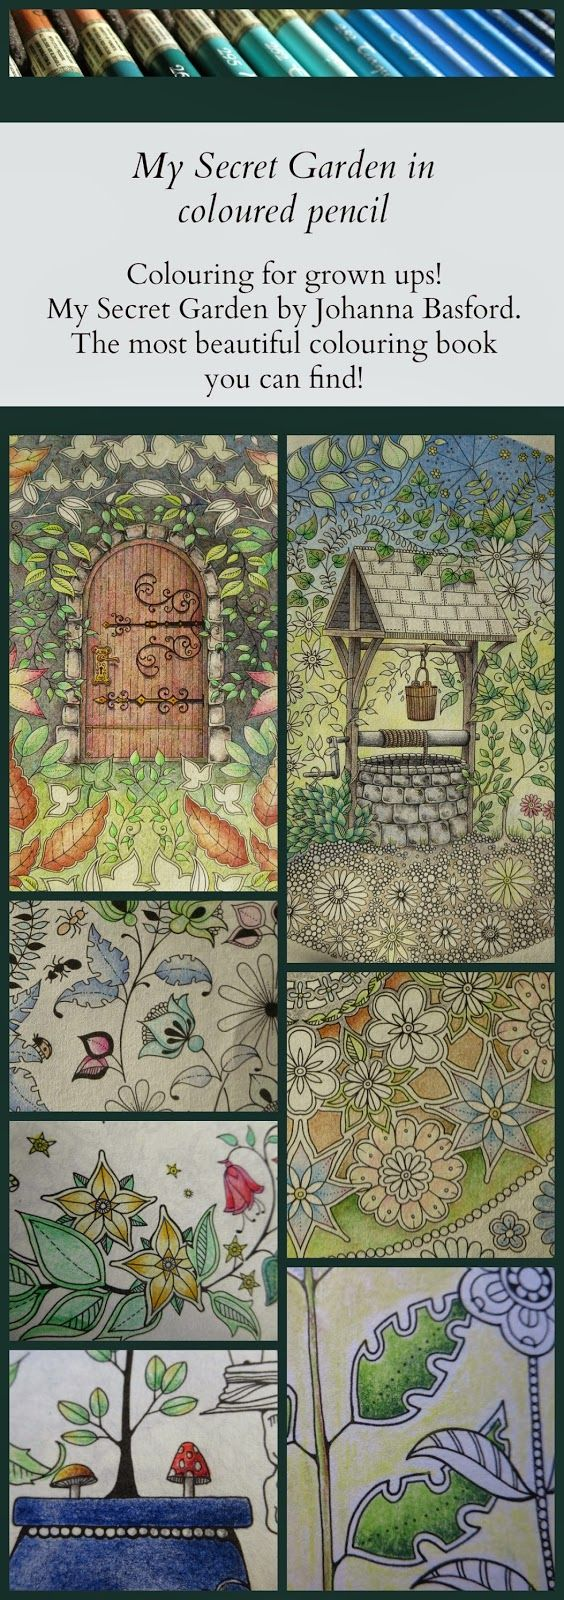 Passion for Pencils: My Secret Garden colouring book, part 3